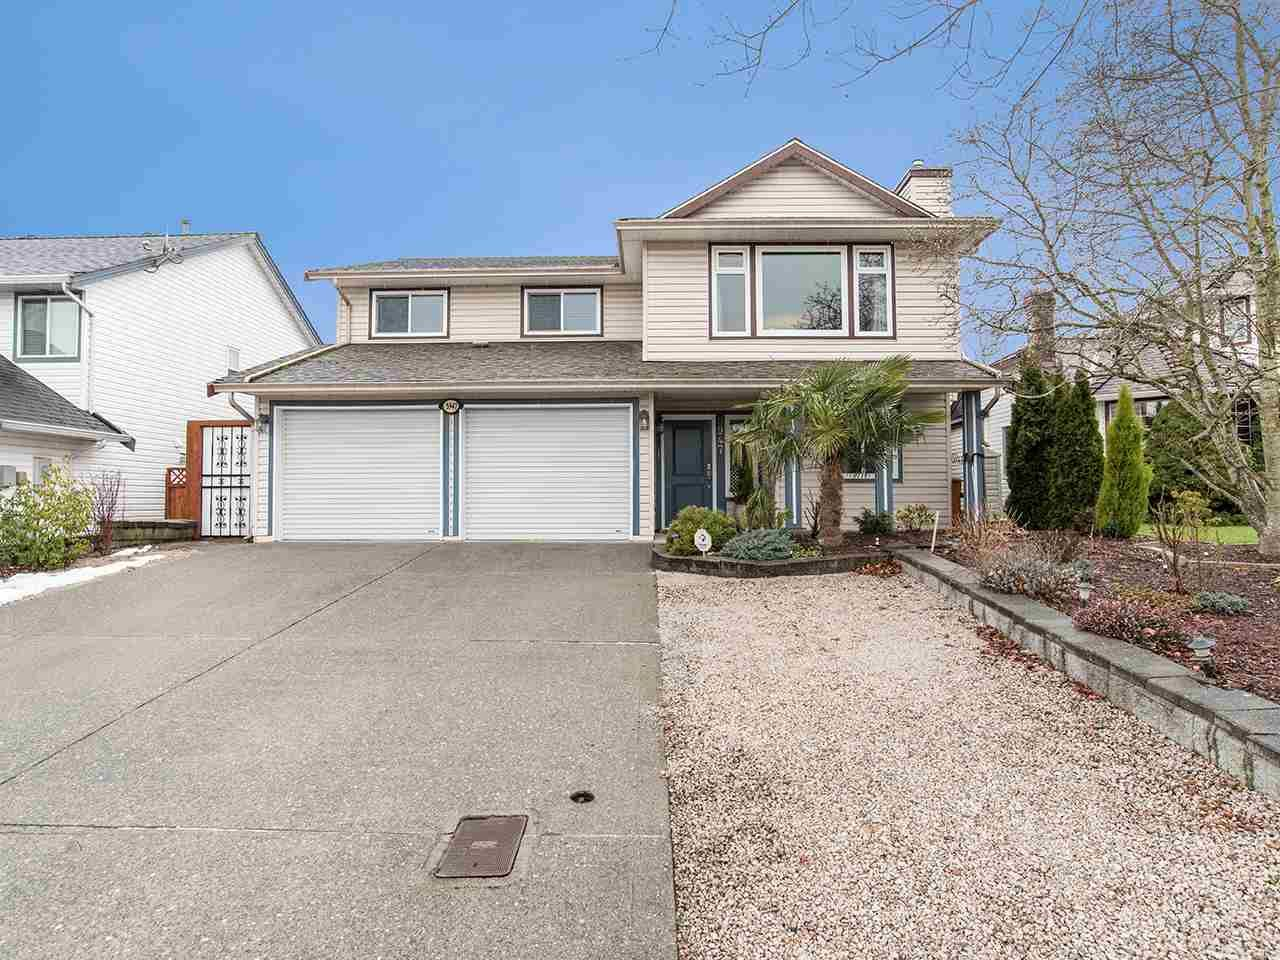 Main Photo: 5947 188 Street in Surrey: Cloverdale BC House for sale (Cloverdale)  : MLS®# R2541385